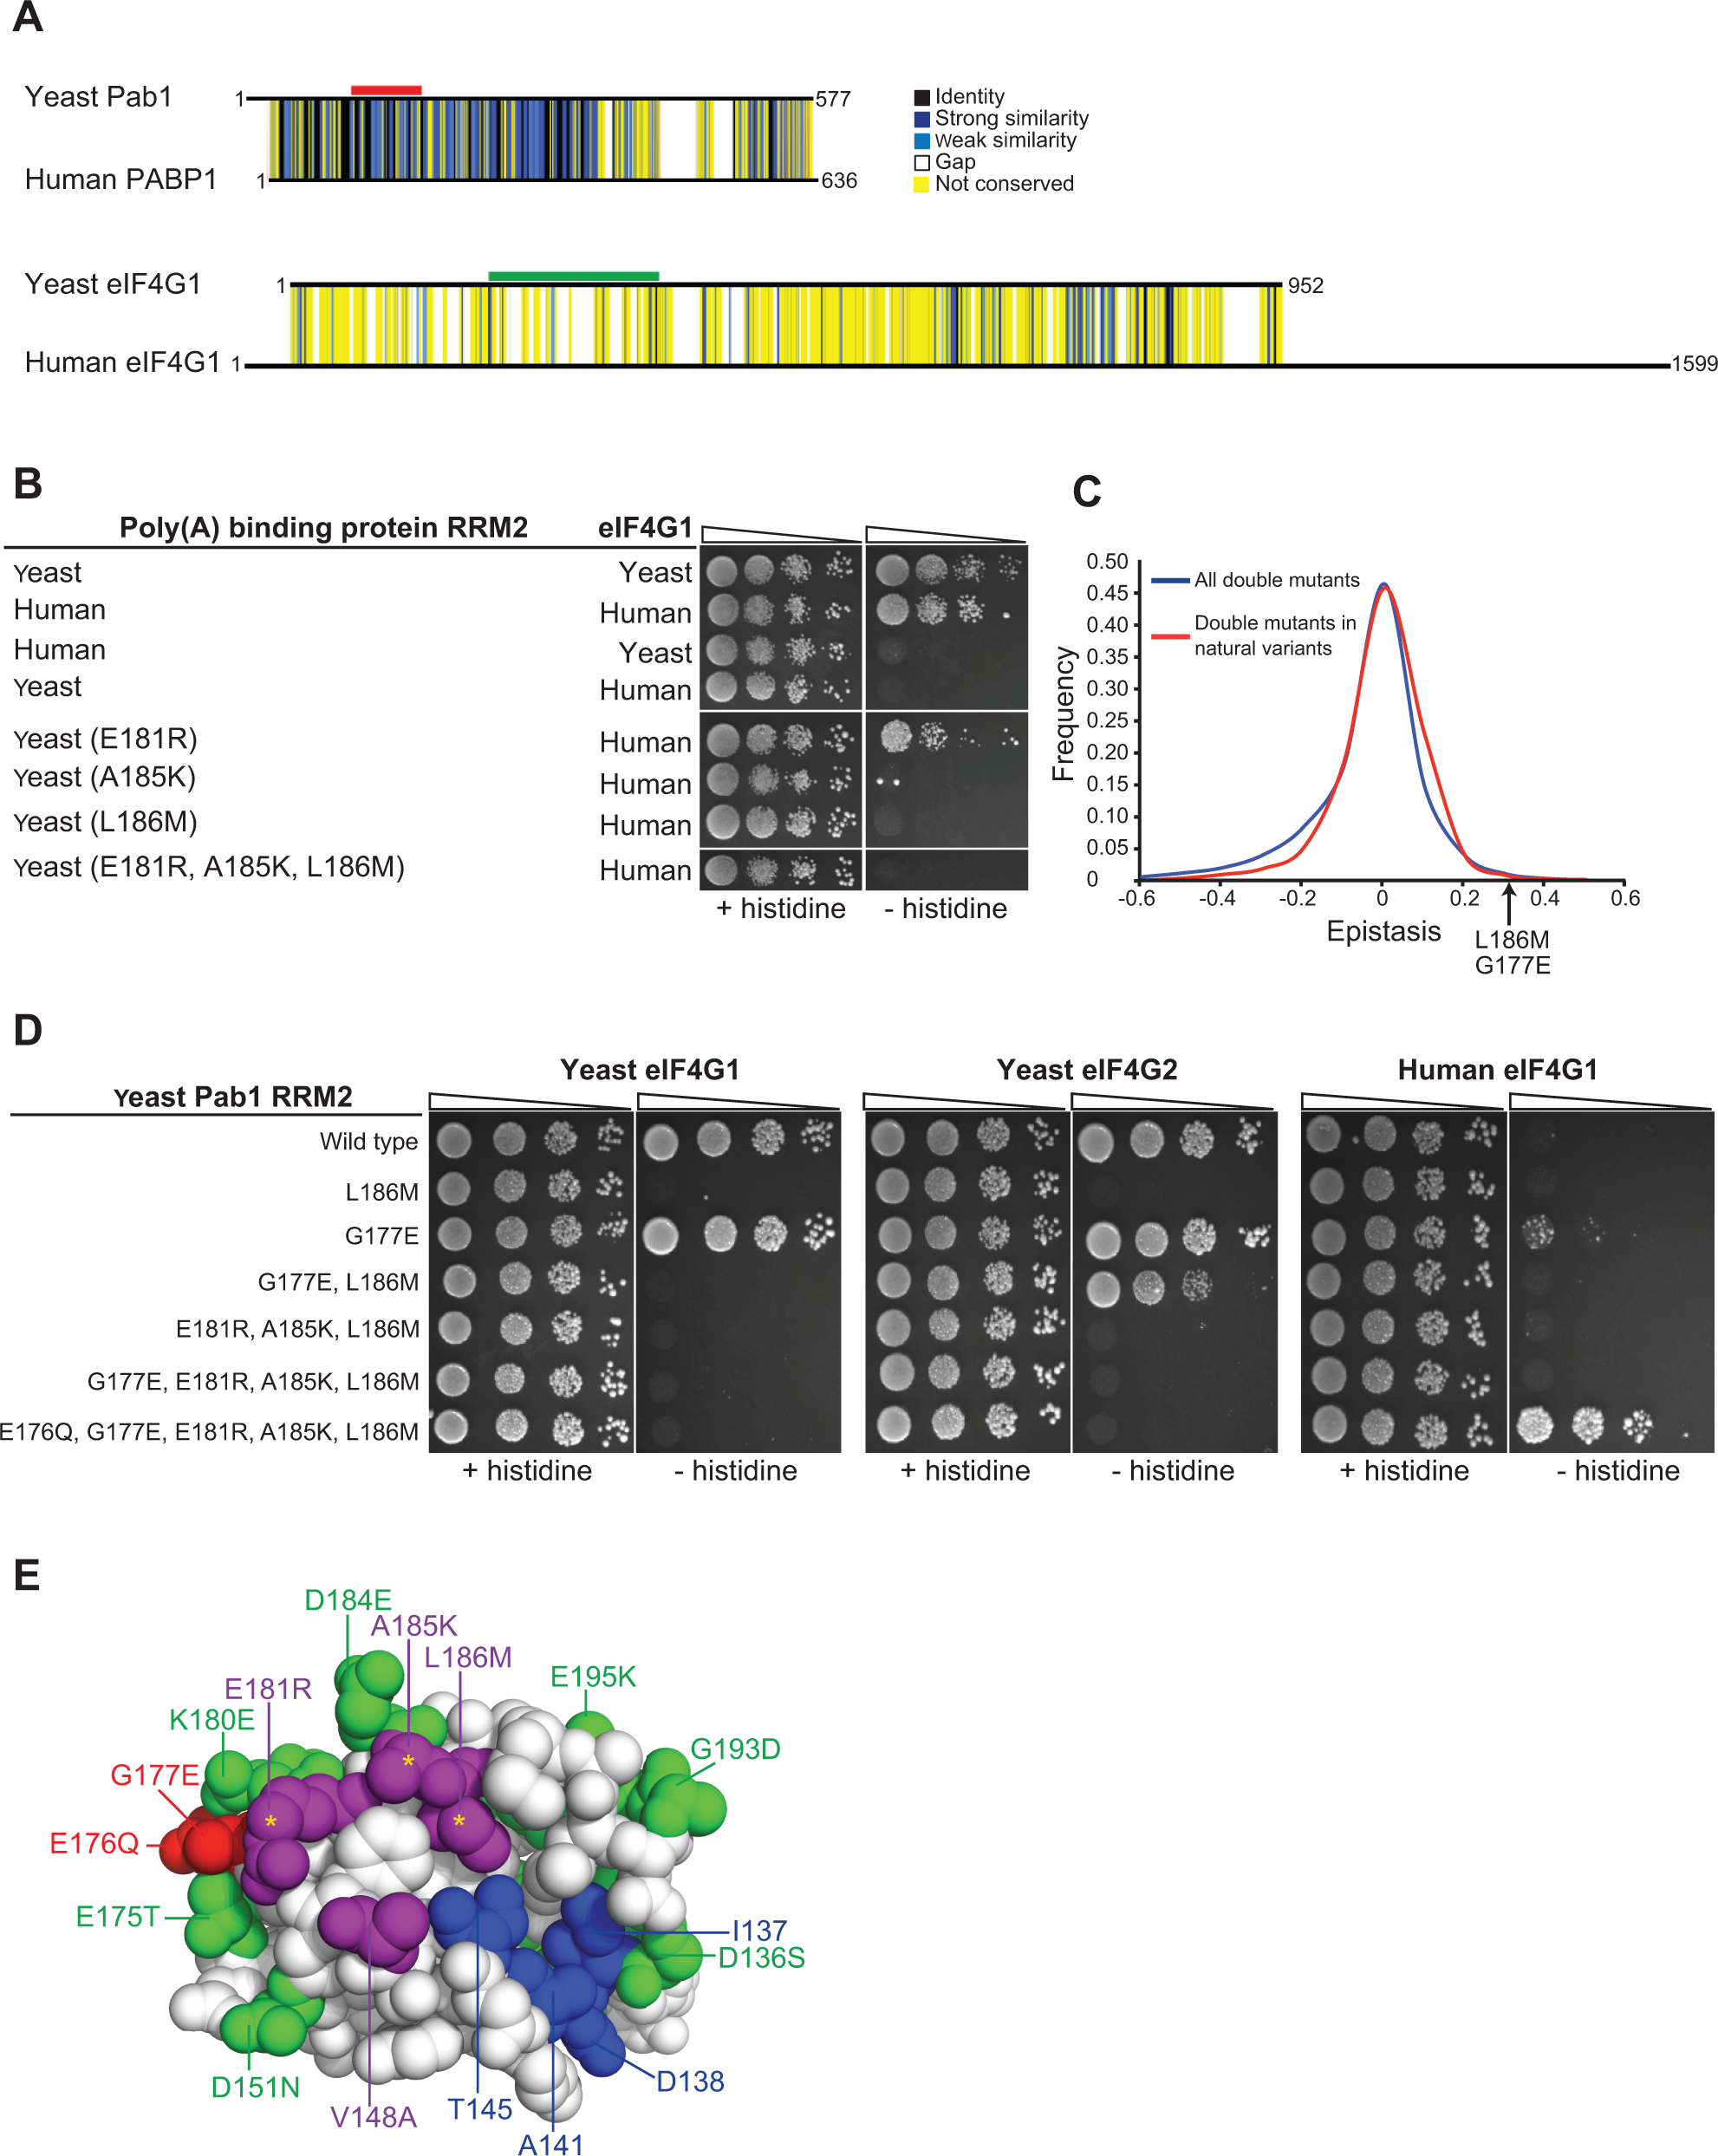 Testing humanizing substitutions for their ability to change the binding specificity of the yeast Pab1 RRM2 to the human eIF4G1.